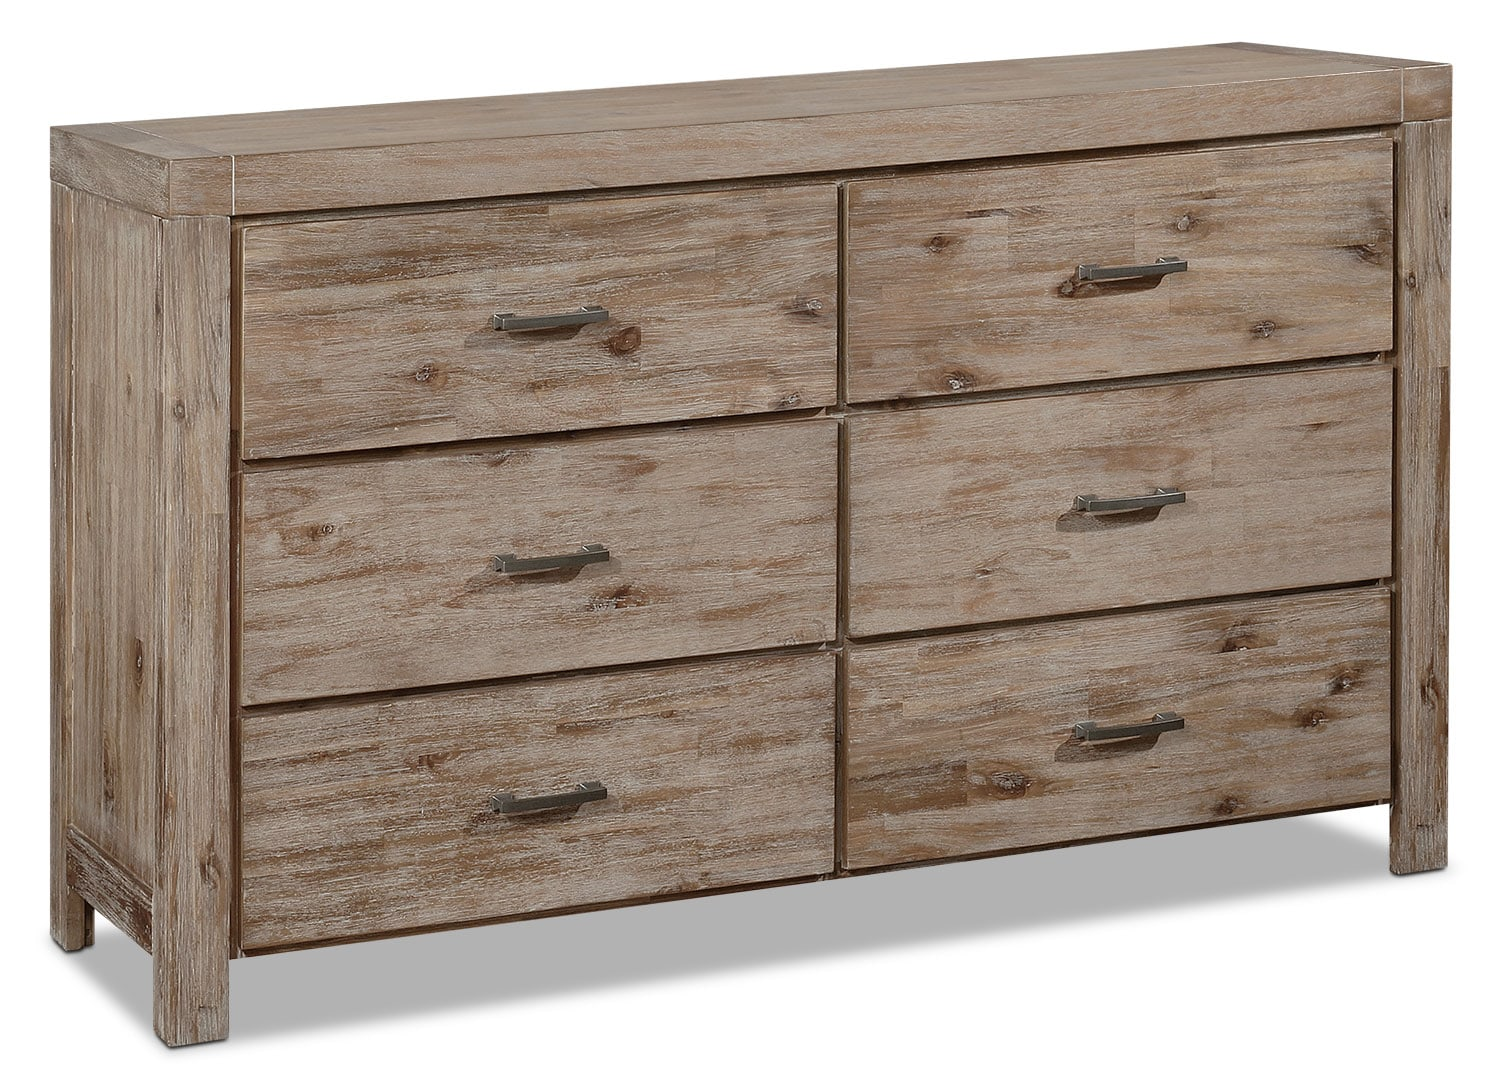 Bedroom Furniture - Acadia Dresser